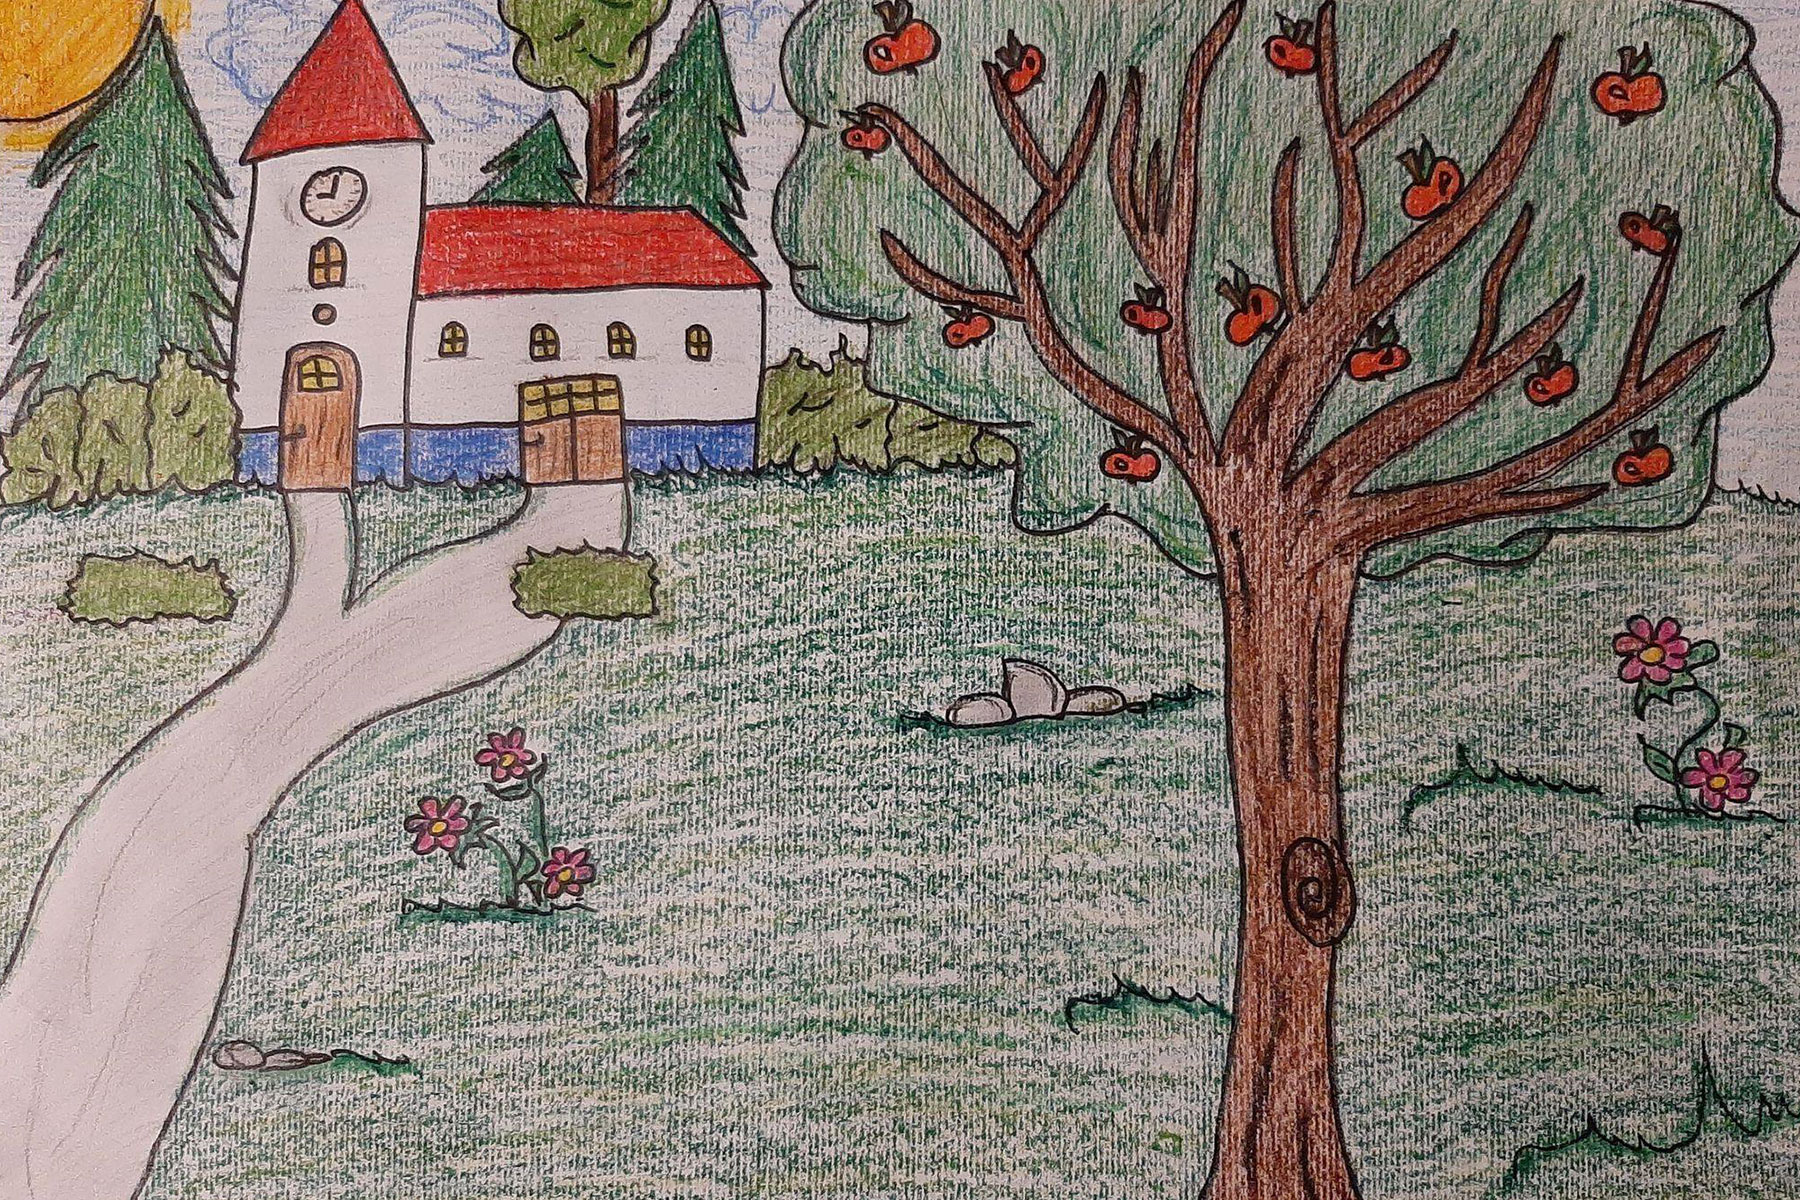 In addition to planting apple trees, children also made drawings, learnt songs, and prepared a church service.